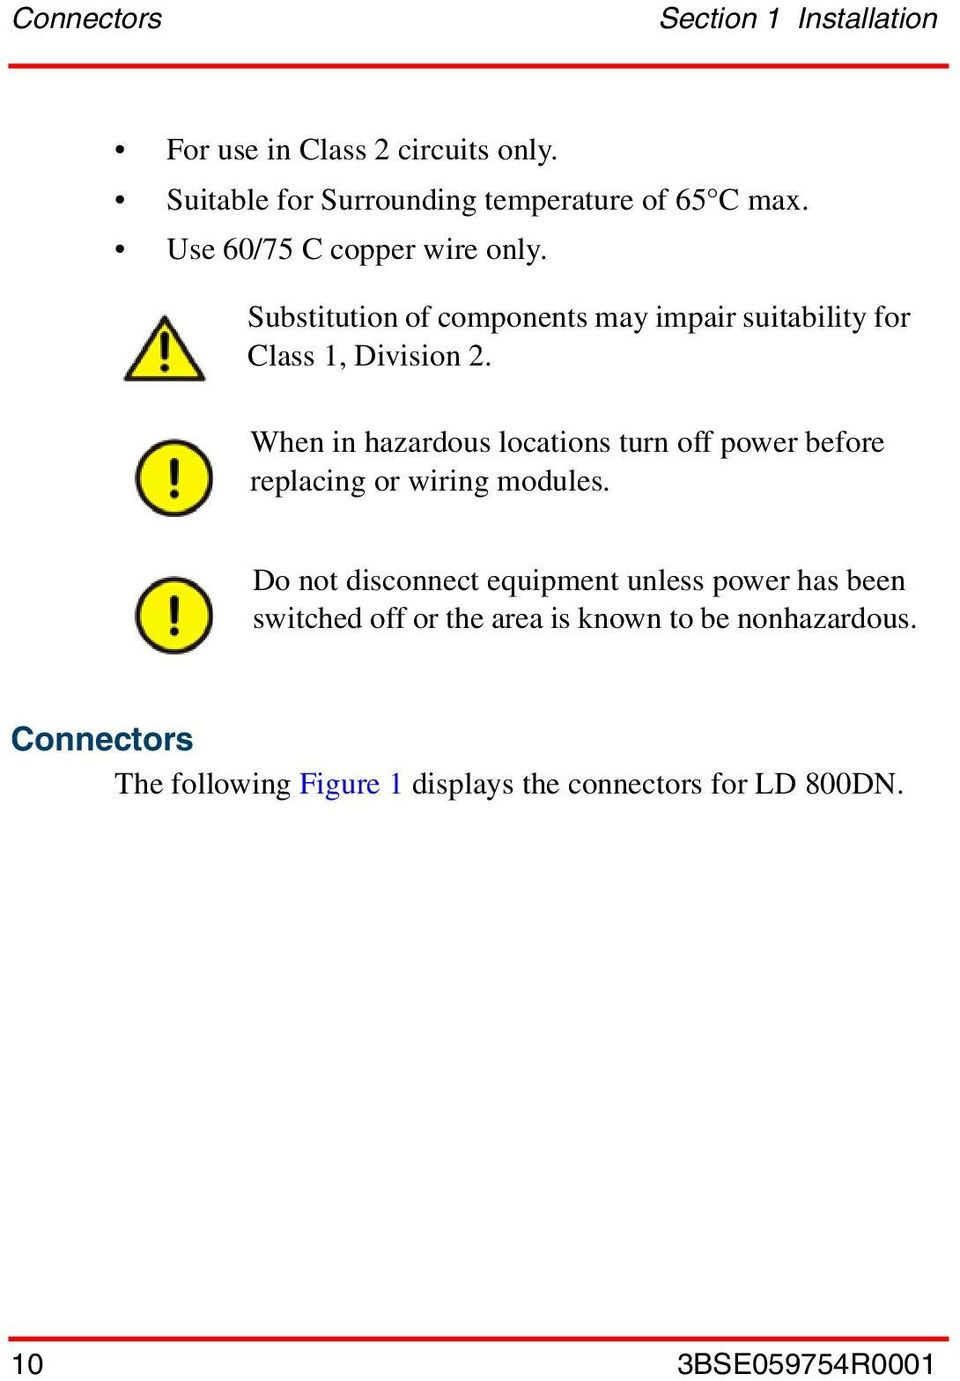 When in hazardous locations turn off power before replacing or wiring modules.